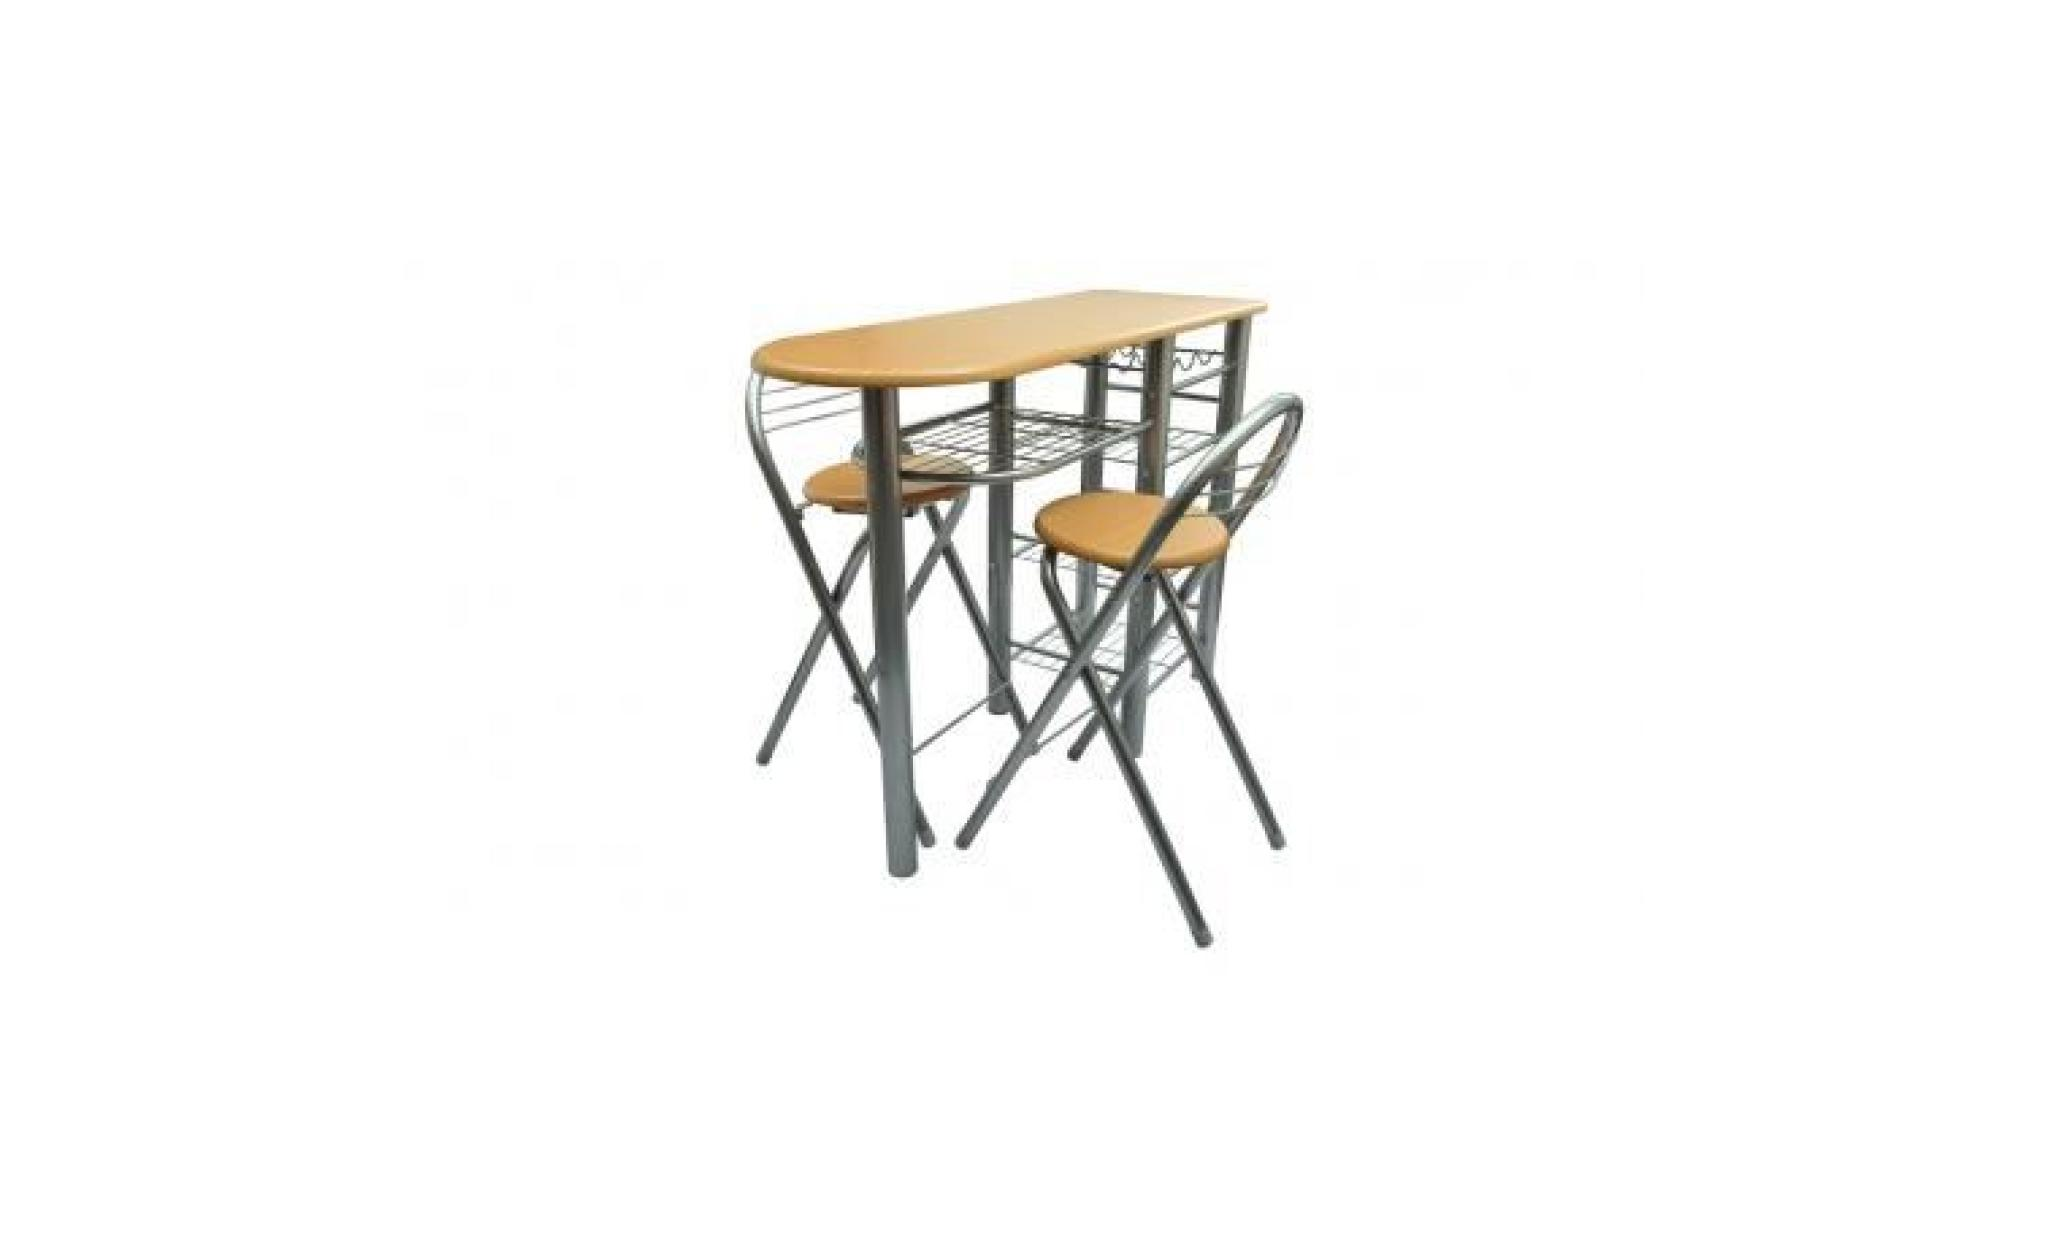 Ensemble table a manger et chaise pas cher home design architecture - Ensemble table chaise cuisine pas cher ...